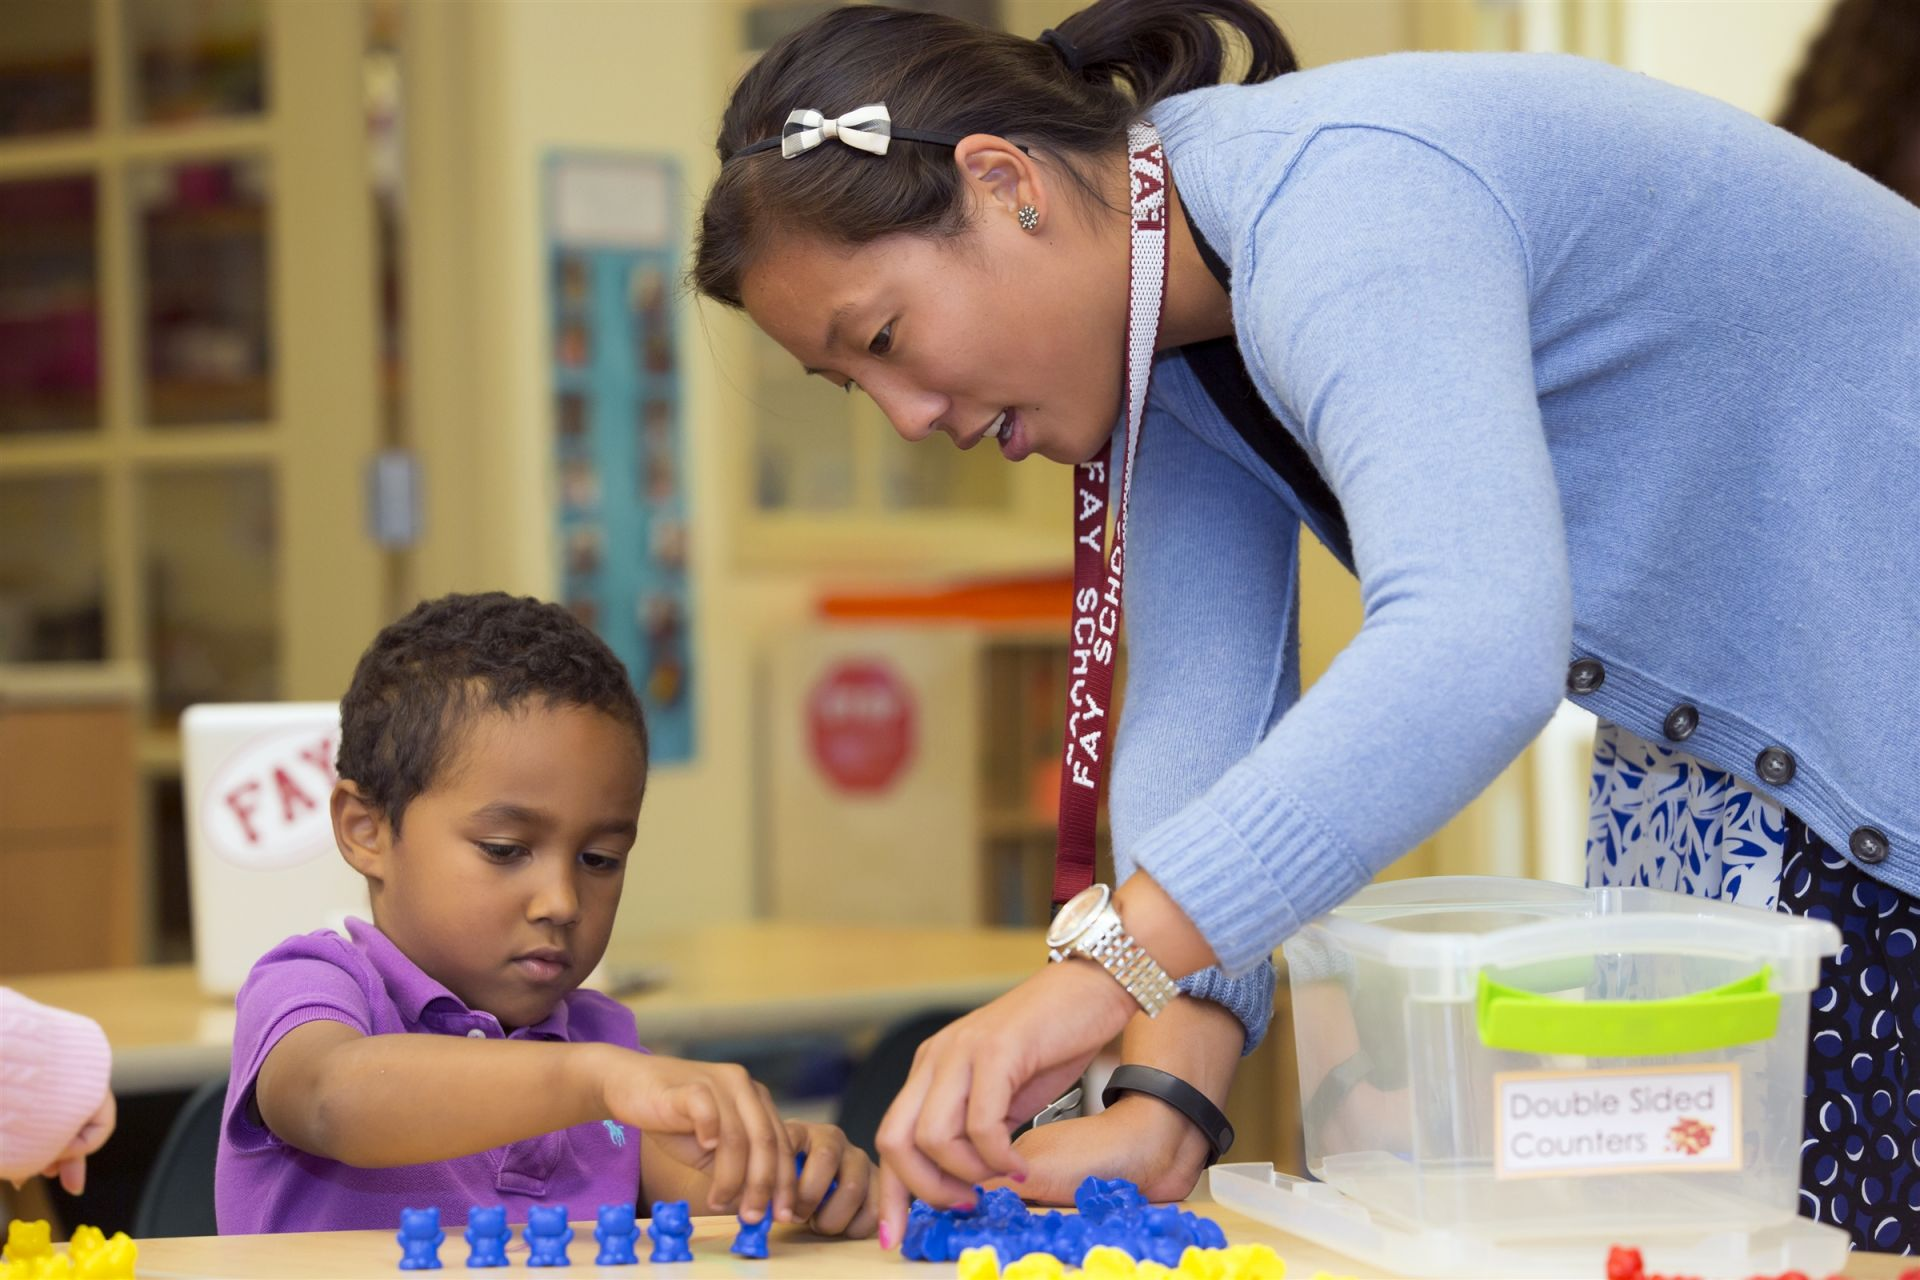 Math in the Primary School is hands-on, and our curriculum focuses on skill building, problem solving, and connecting math concepts to the real world. Teachers place special emphasis on helping students to express their mathematical understanding both verbally and in writing.